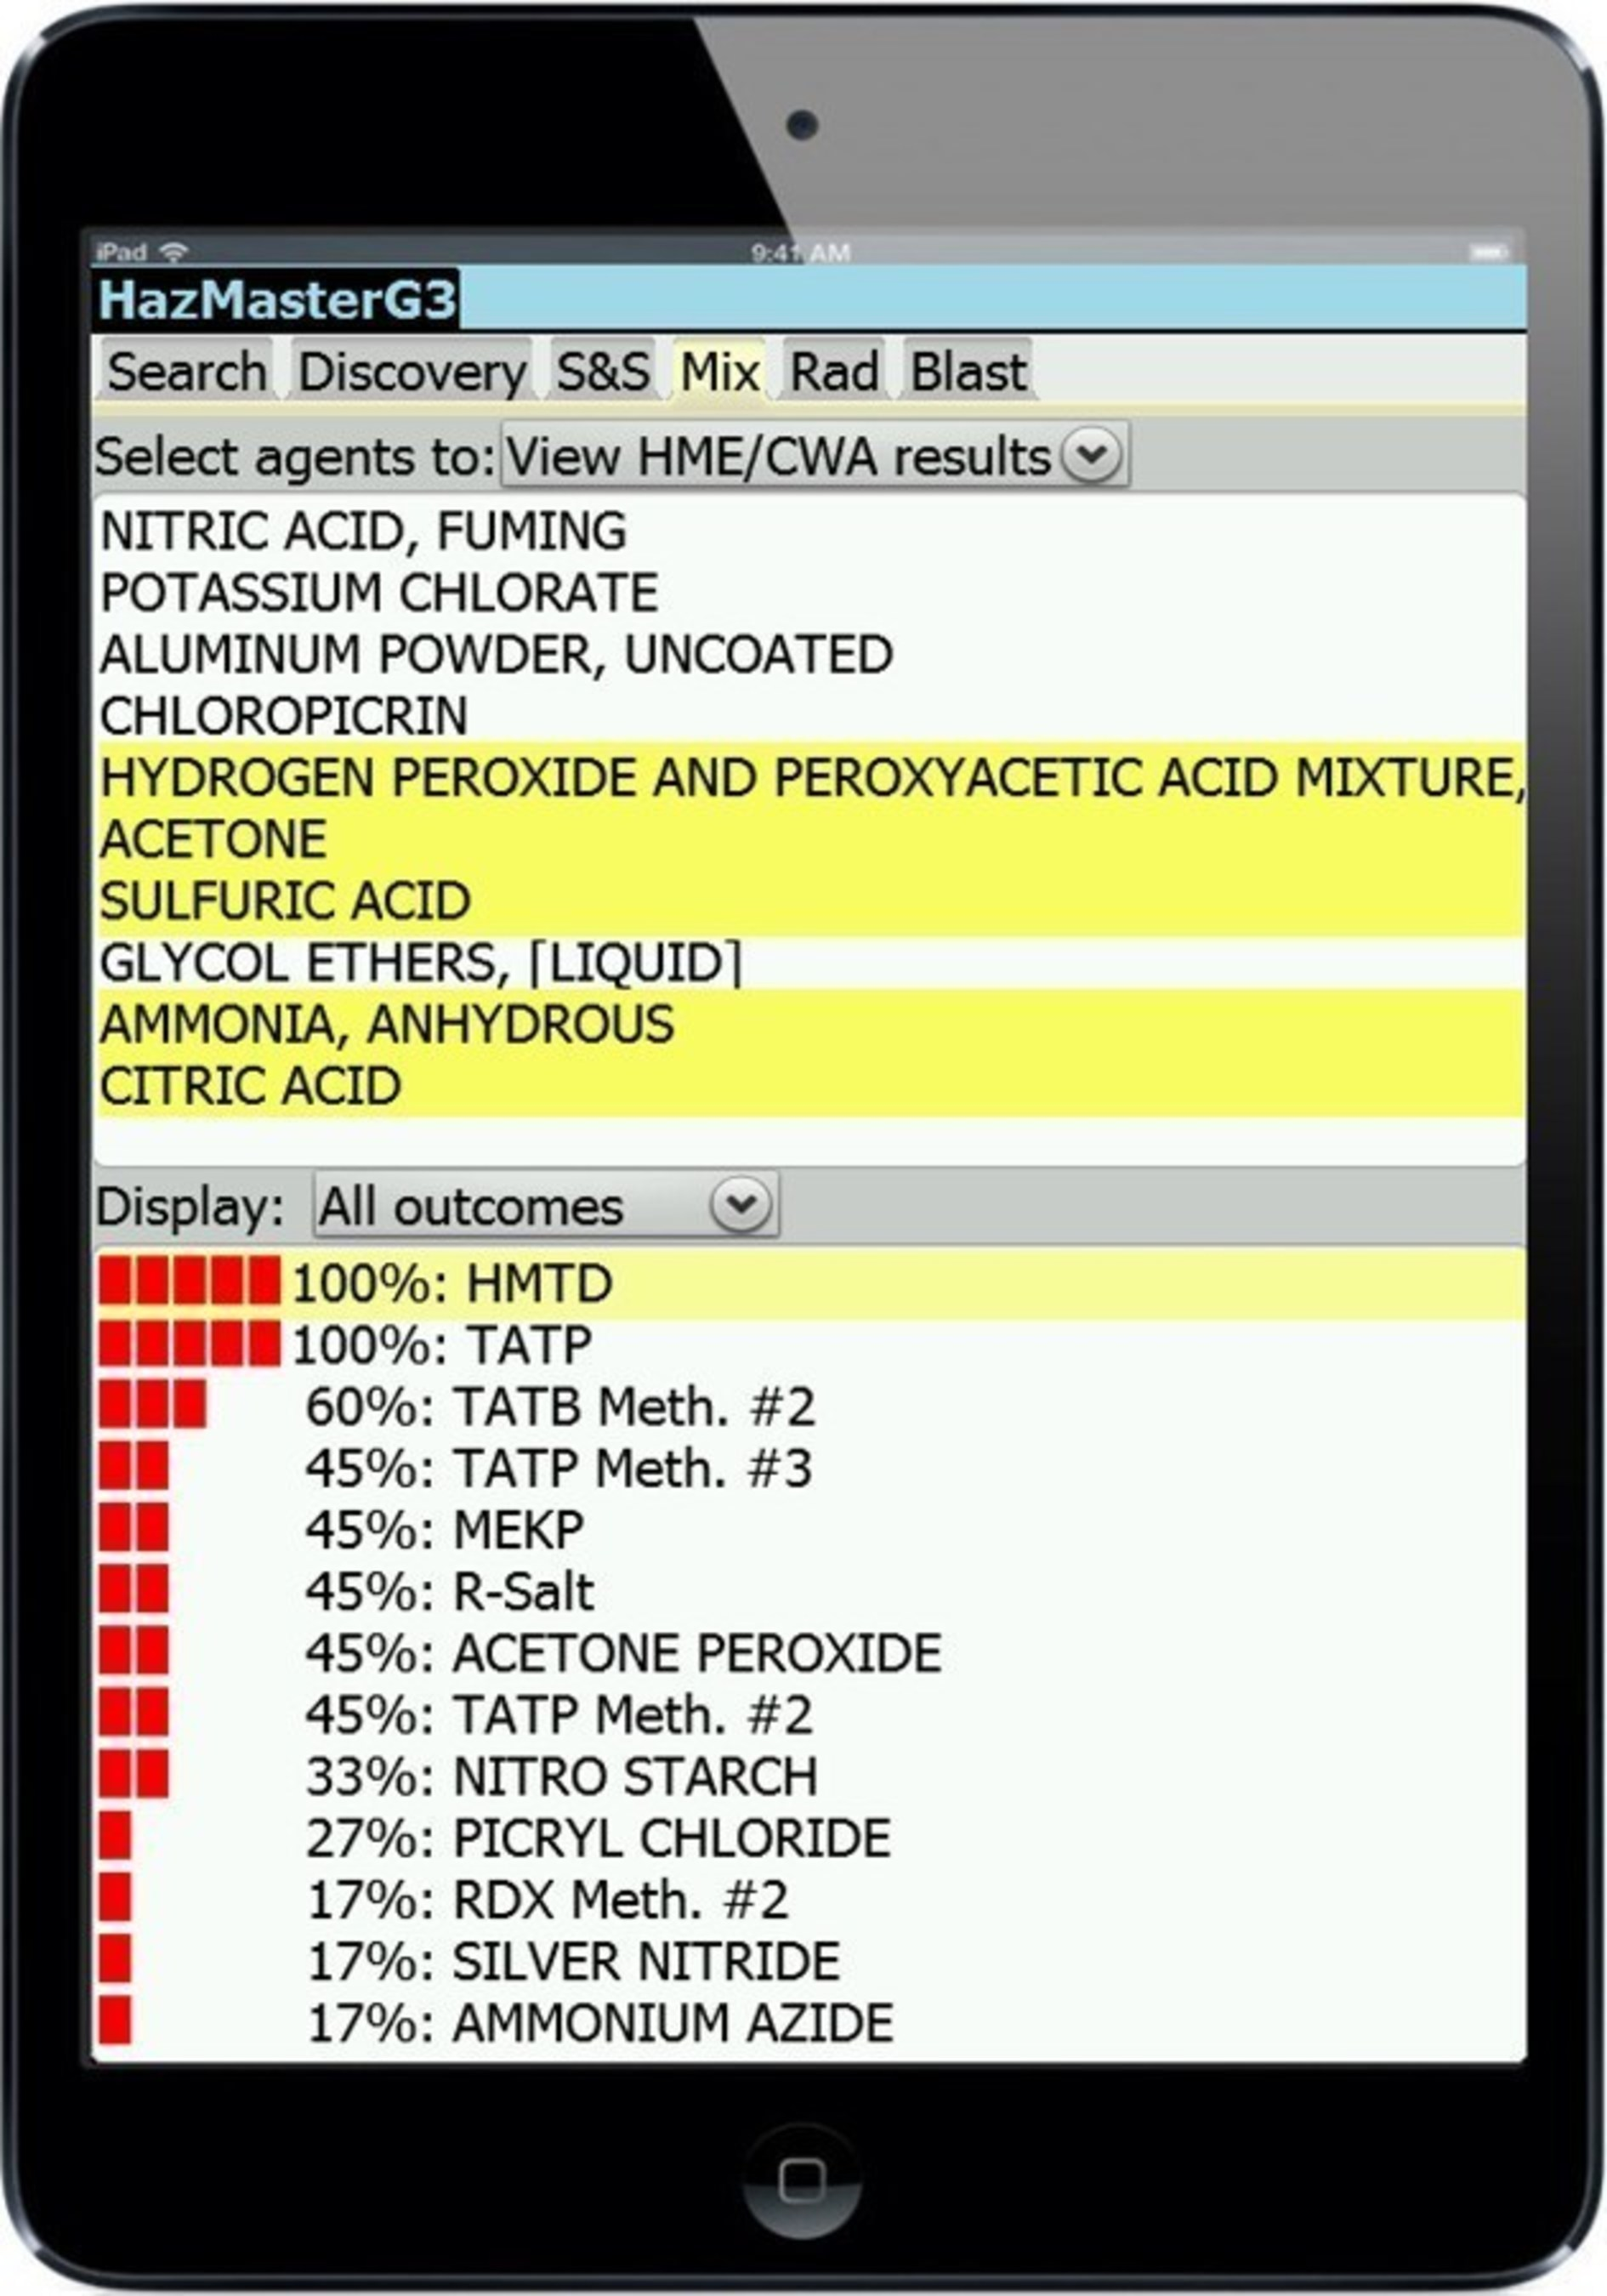 HazMasterG3 New Release Adds Key First Aid, Bio Agent and Clandestine Lab Capabilities for Terrorism Response